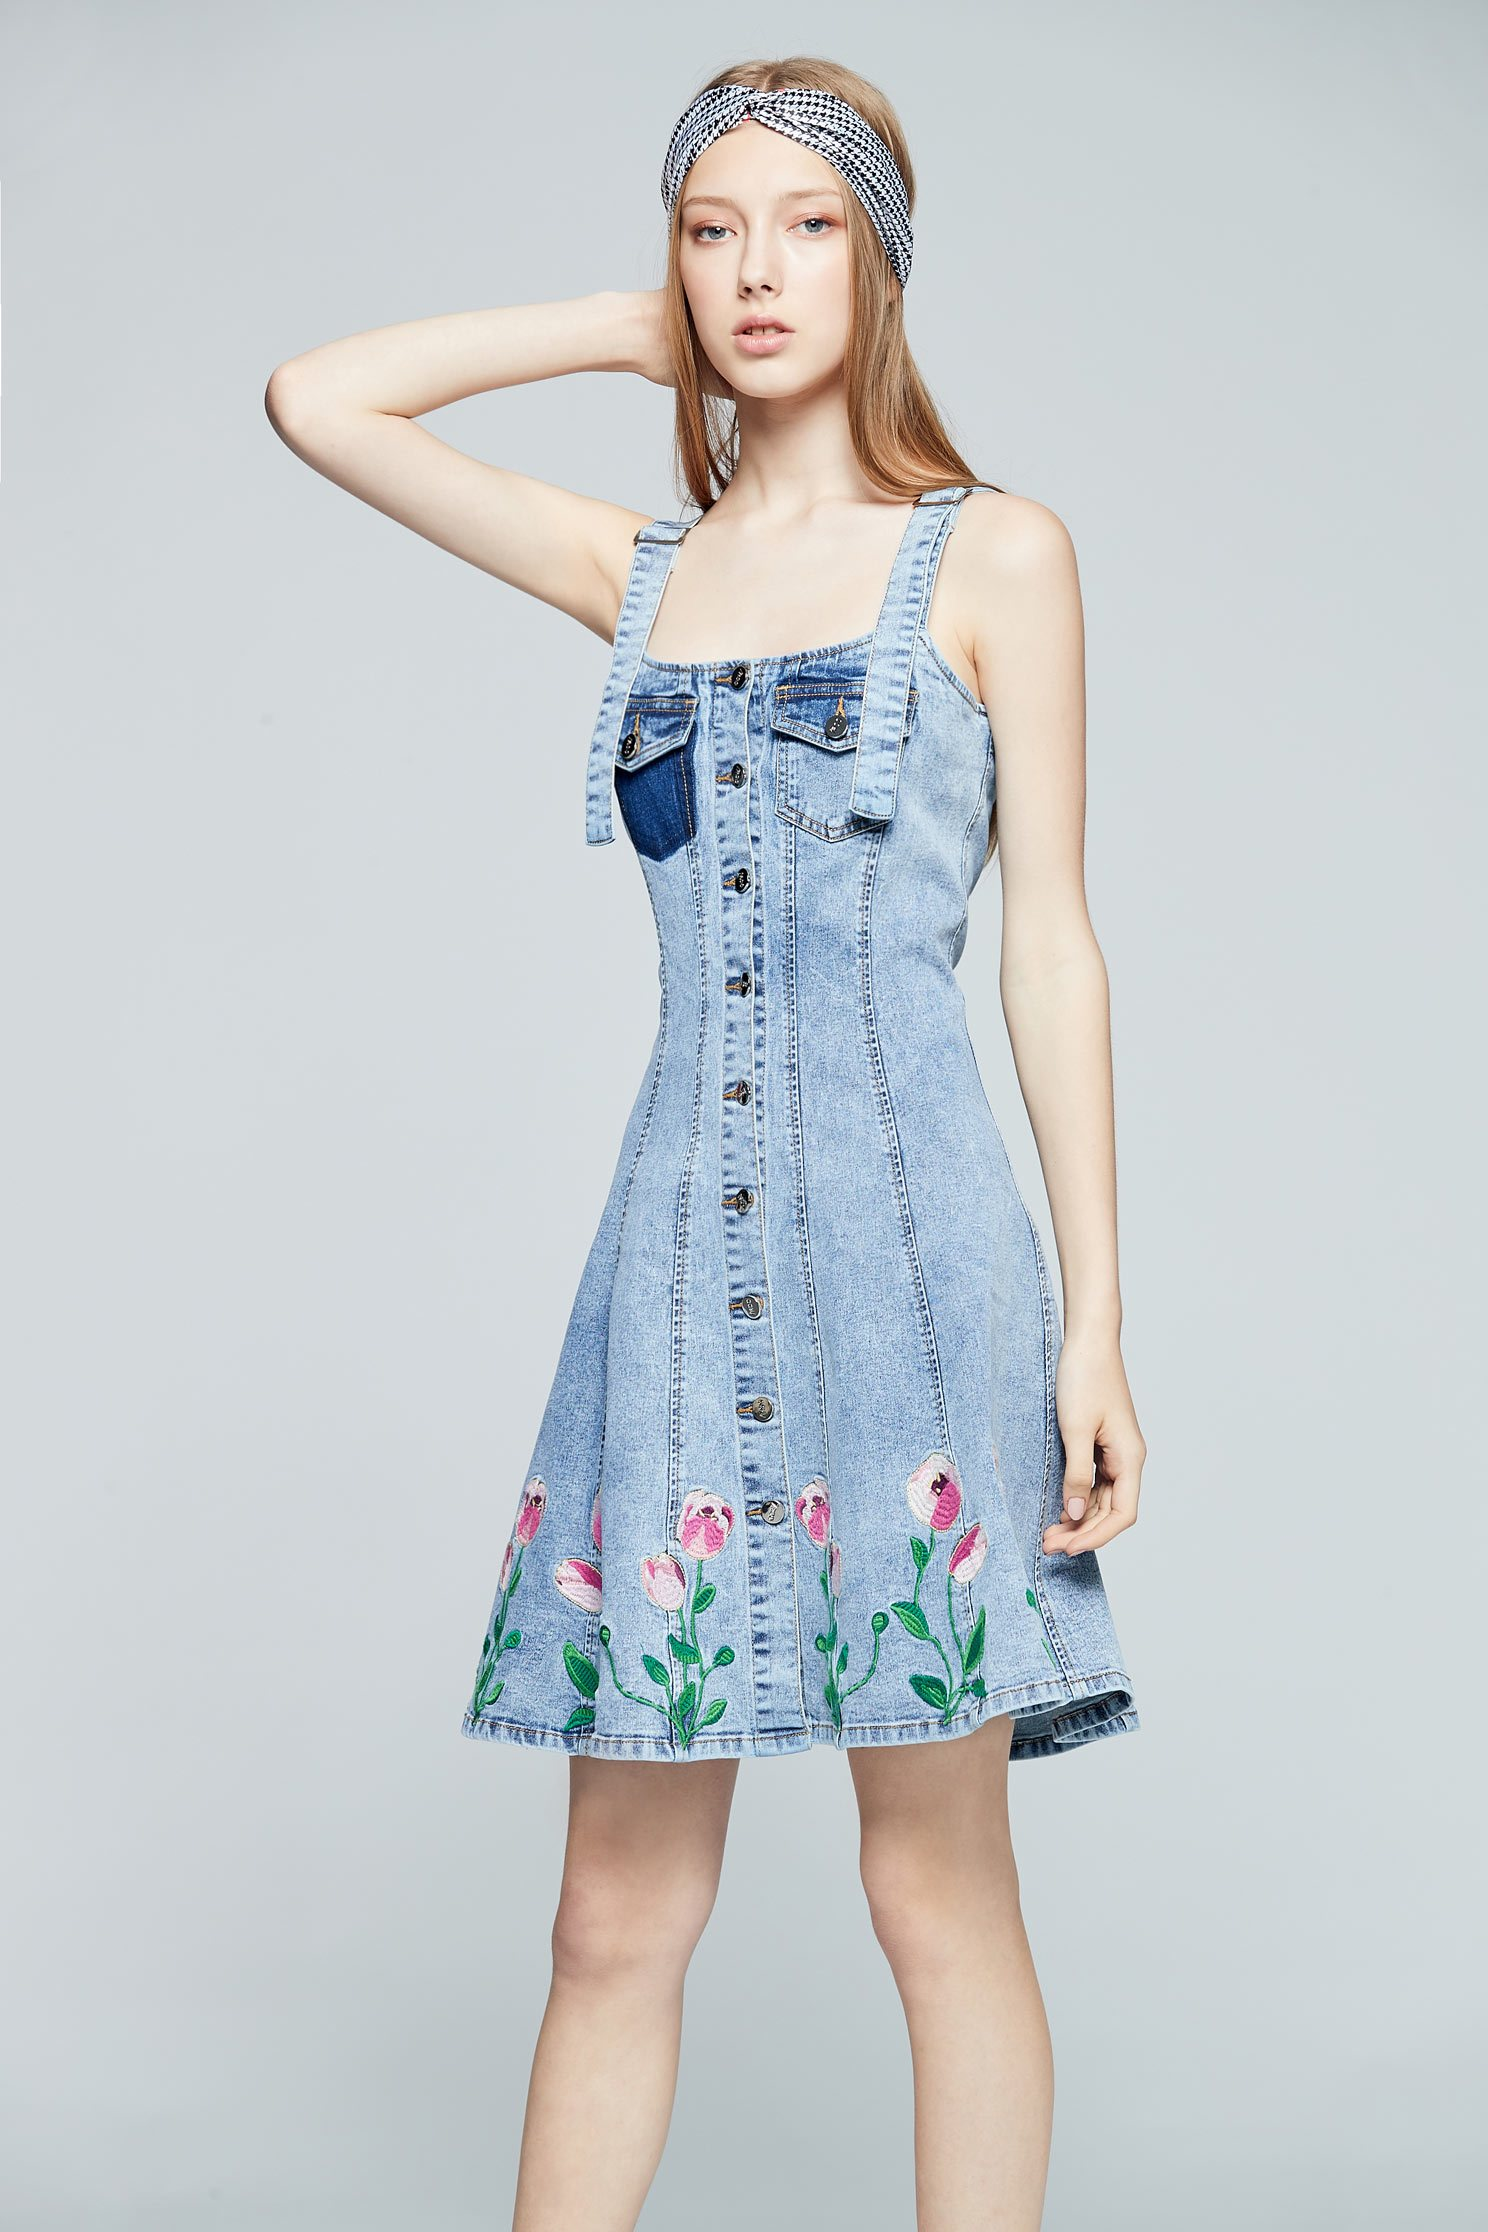 Embroidered denim dress,dress,tanning,casualdress,embroidery,embroiderddress,sleevelessdress,cowboy,embroidered